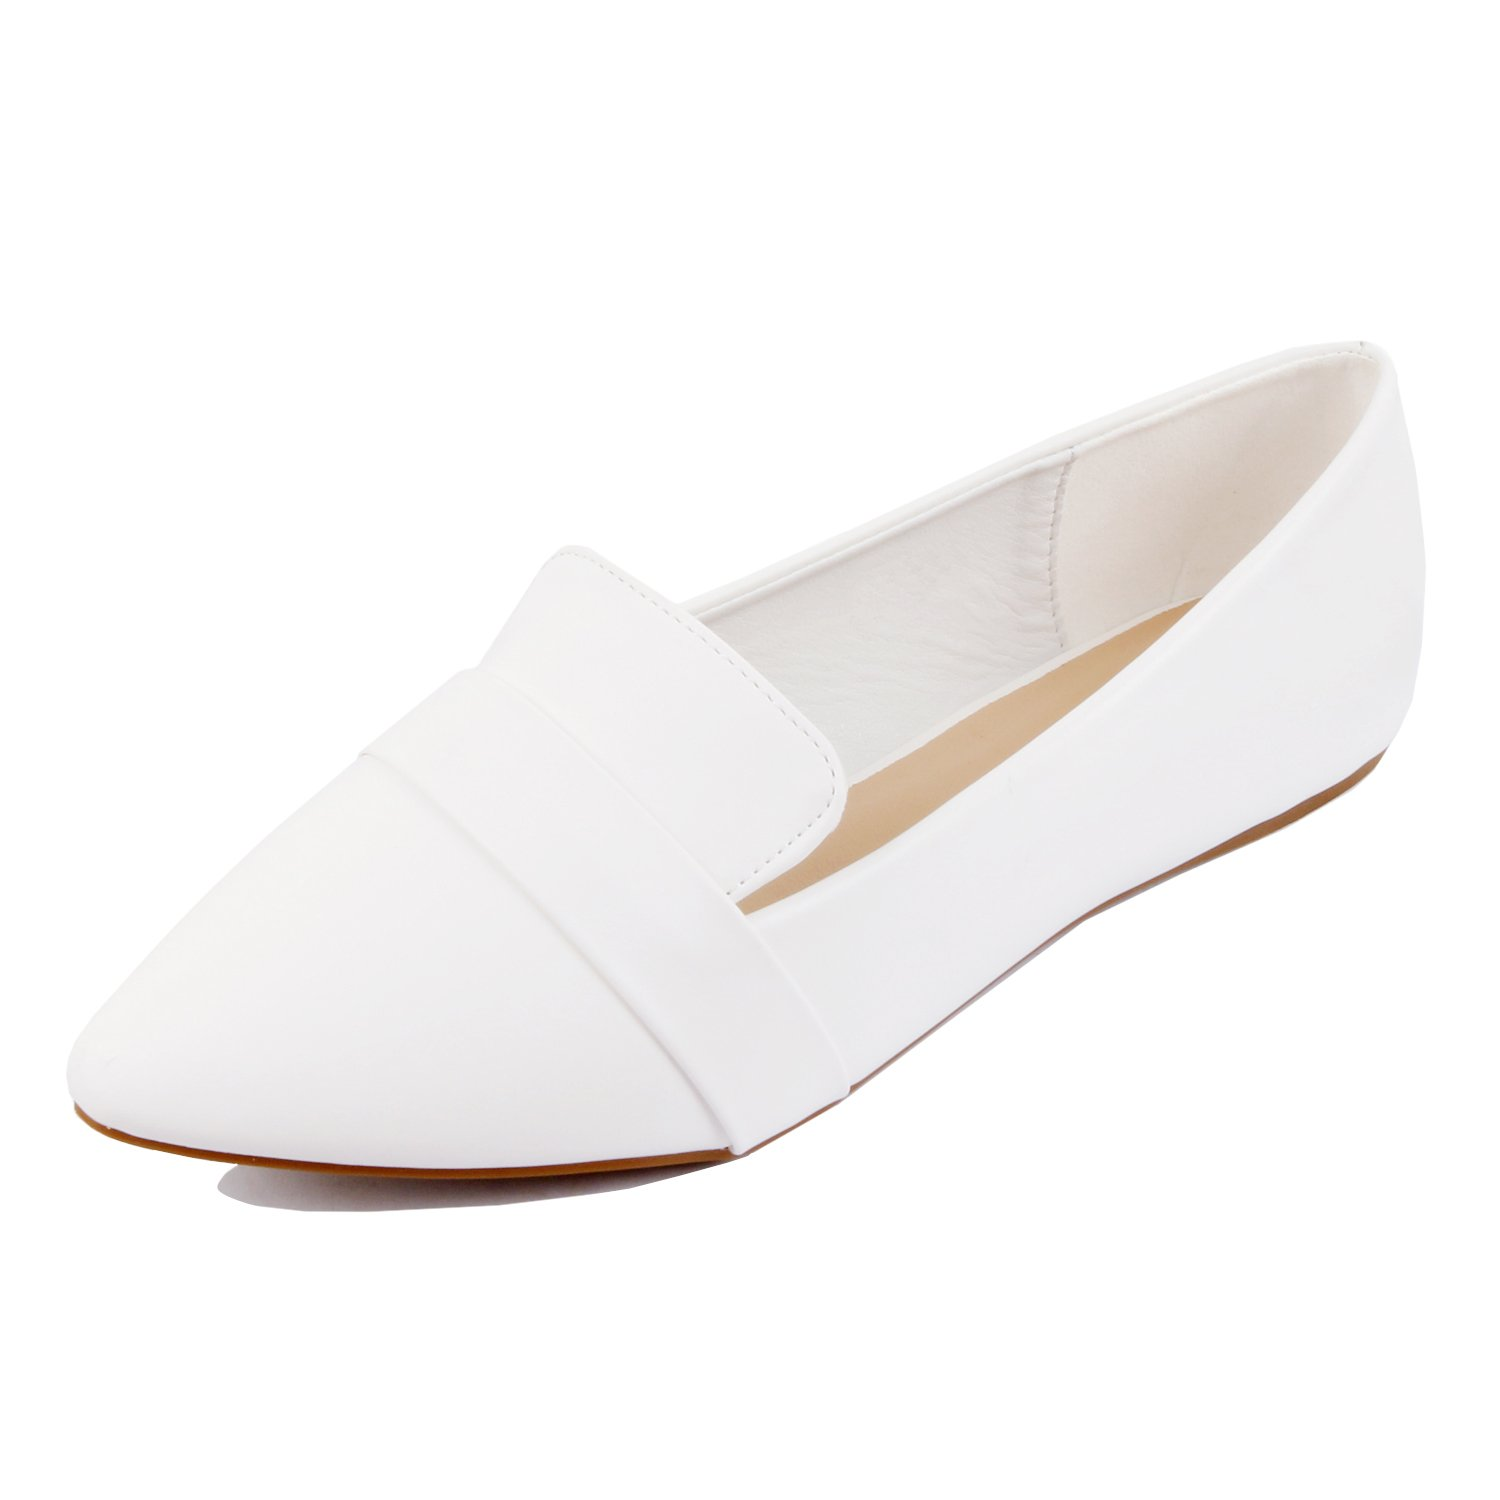 Guilty Heart - Women Soft Comfortable Pointy Toe Slip On Penny Loafer Flats, White, 10 B(M) US